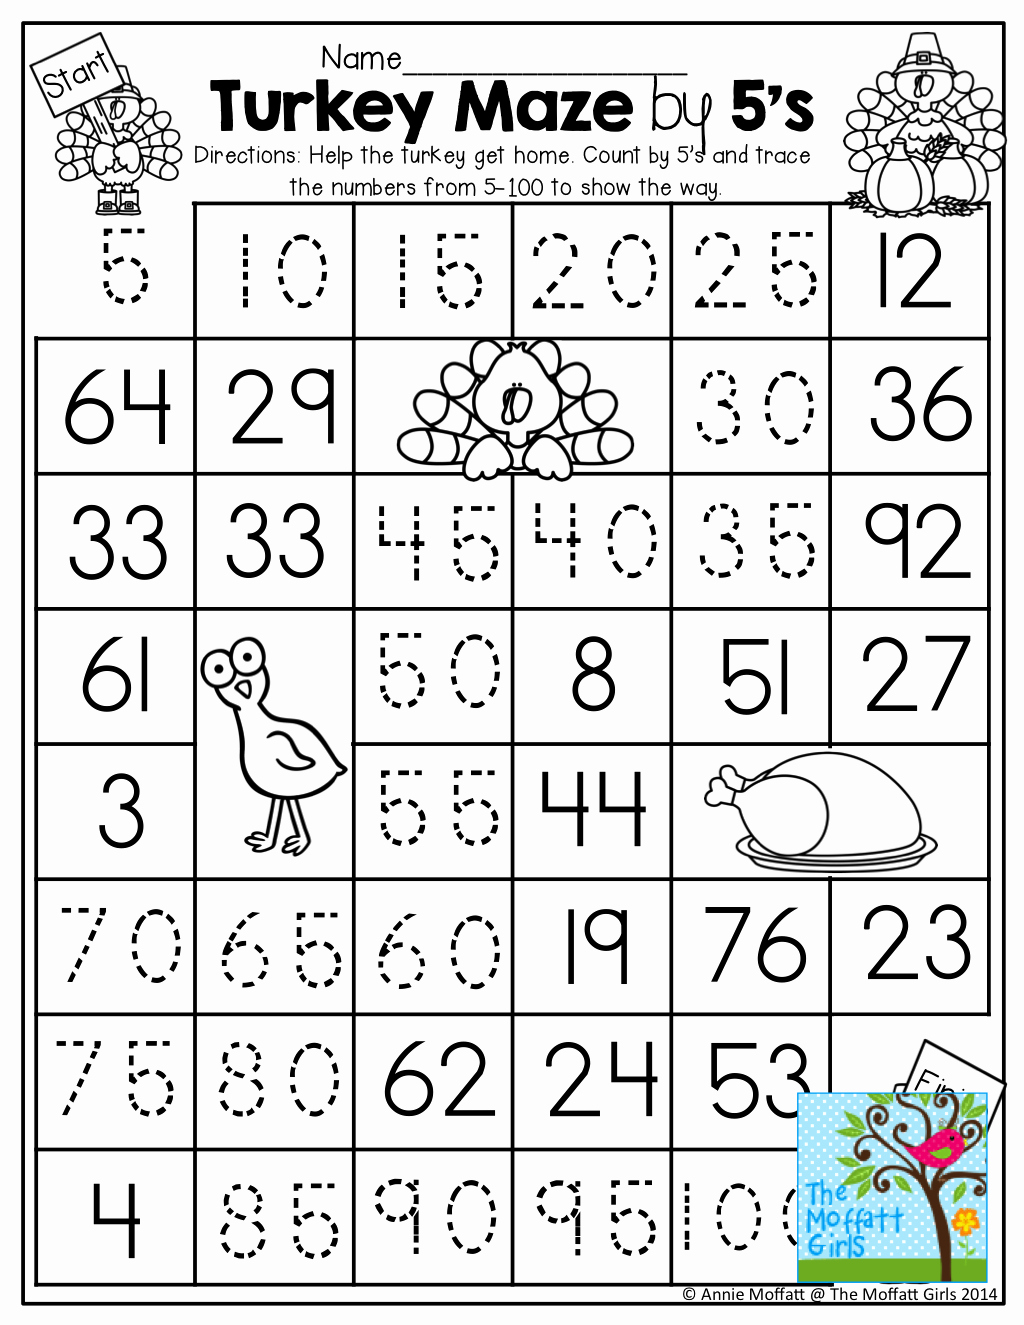 50 Count By 5s Worksheet